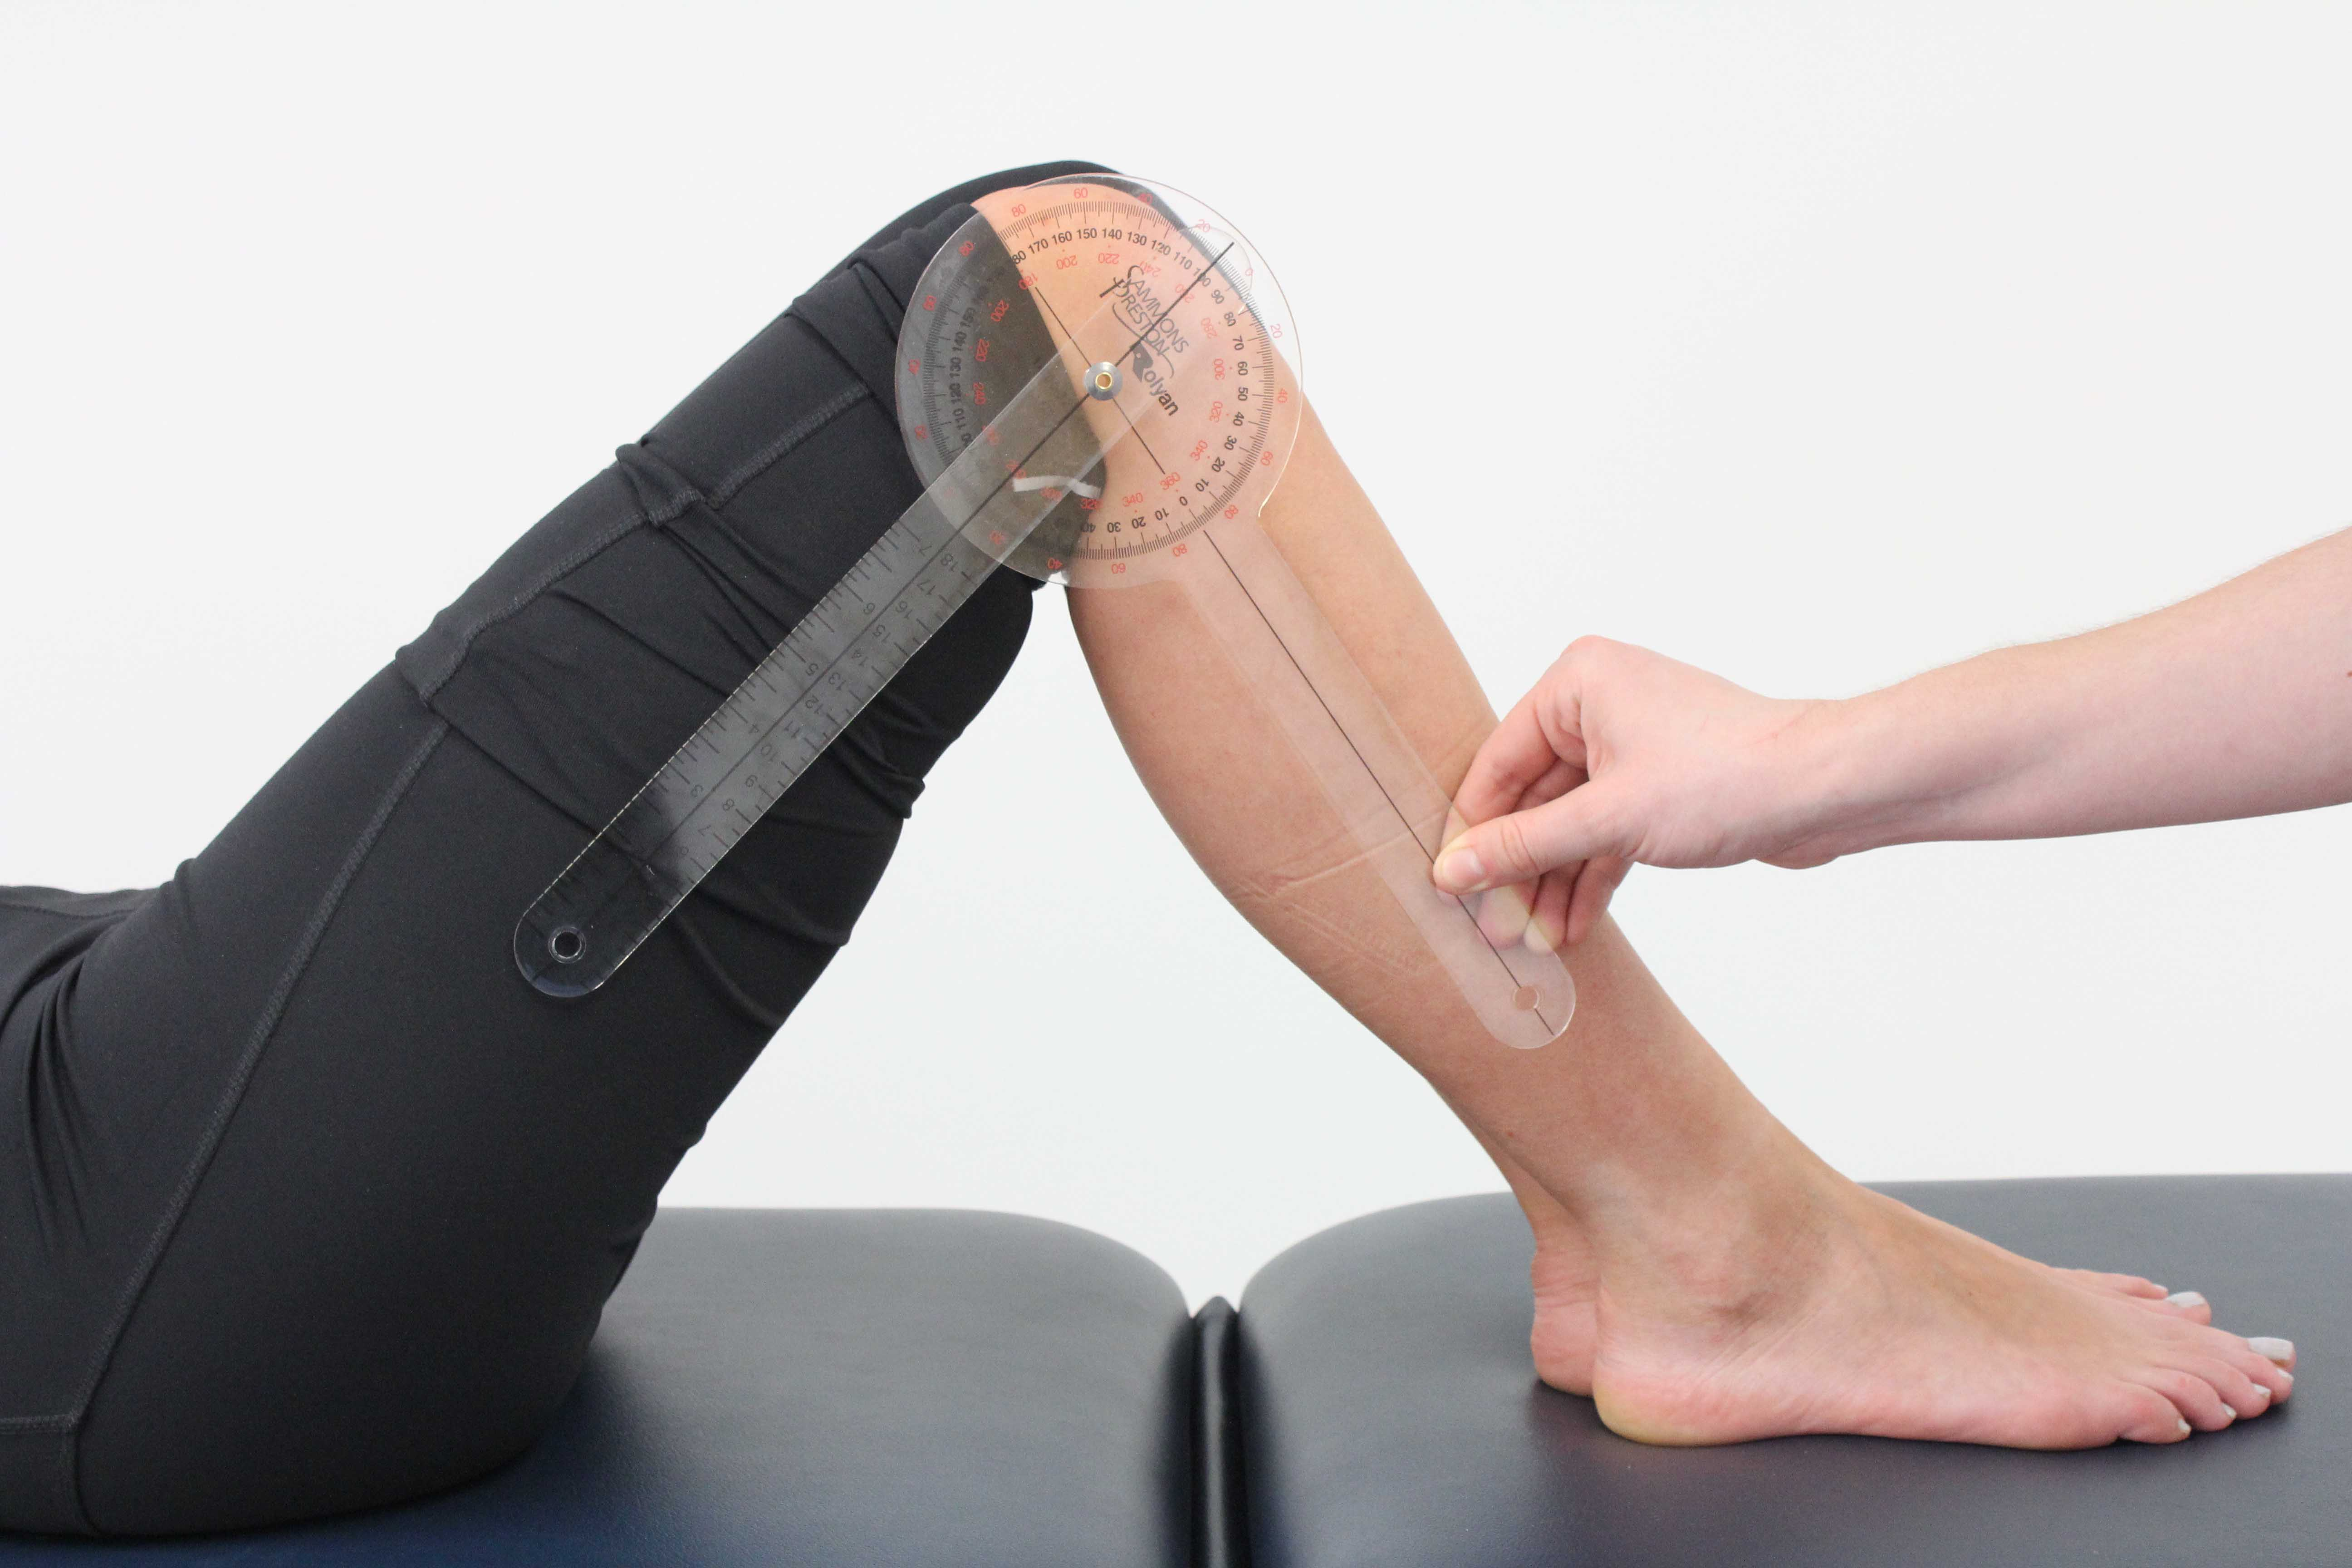 Knee joint assessment using a goniometer